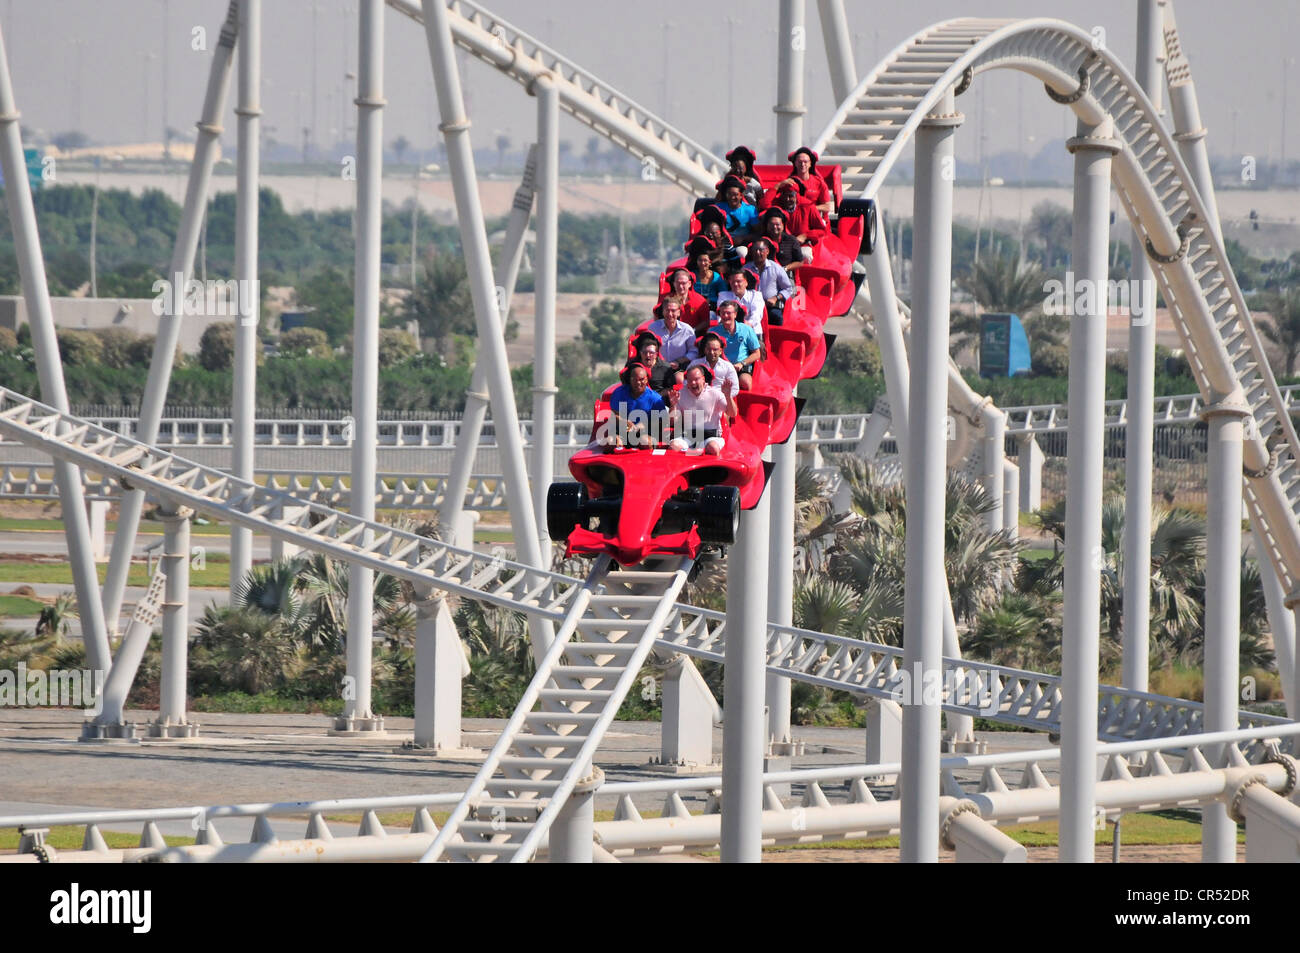 The Fastest Roller Coaster In The World At 240 Mph Ferrari World On Stock Photo Alamy